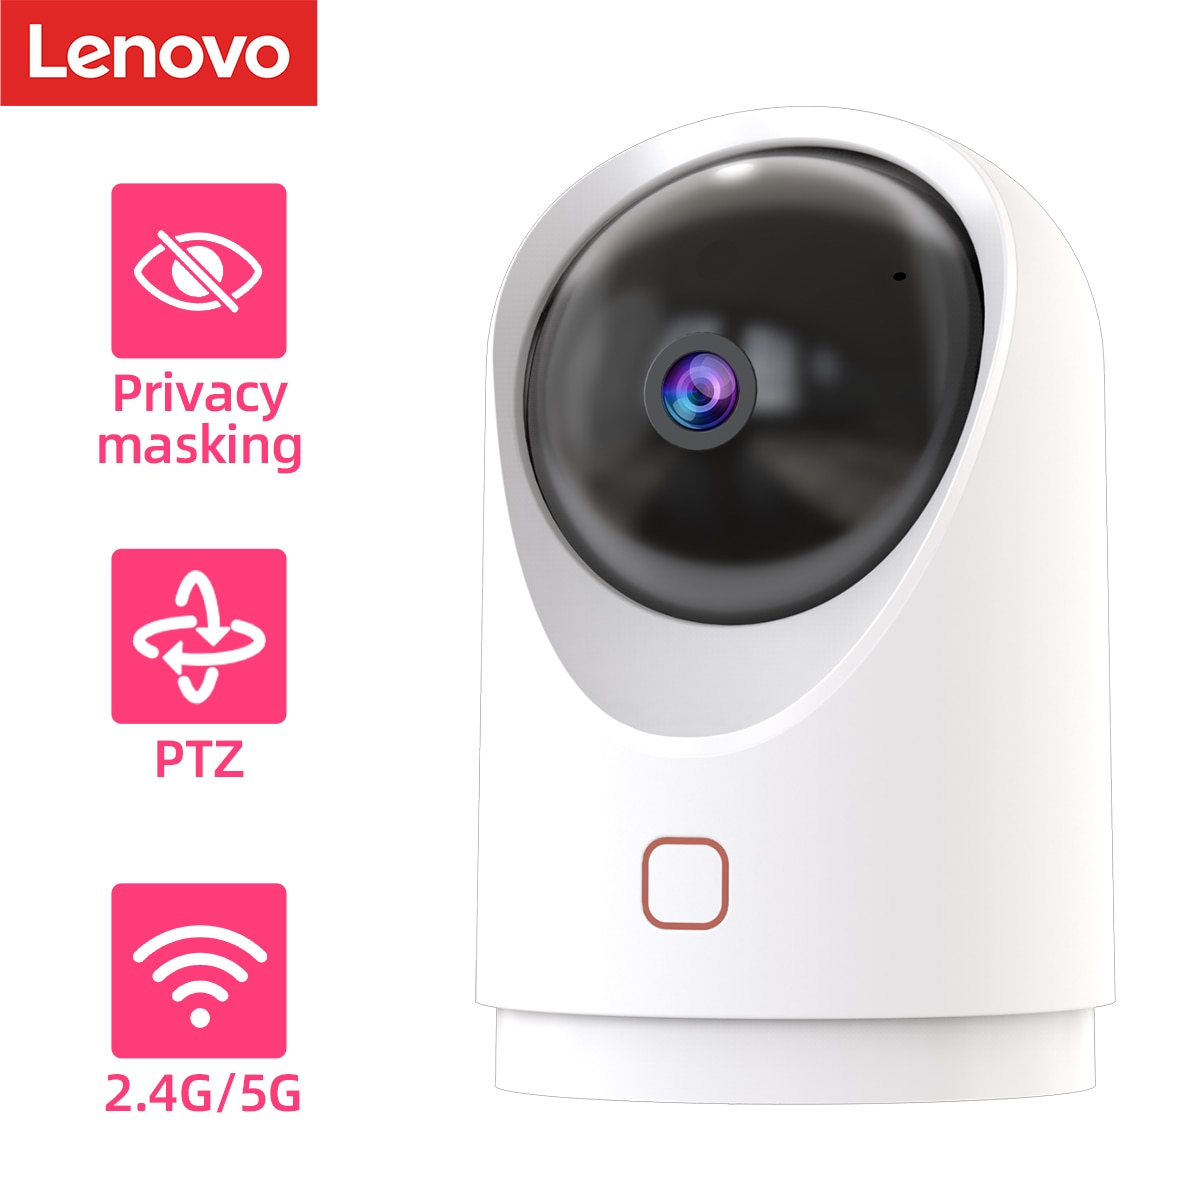 xiaomi hualai xiaofang ip camera camcorder 1080p two way dual lens panoramic view wifi smart home vr view mode for mi home app Lenovo 1080P Smart Dual-band IP Camera Surveillance Camera 2.4G/5G Wifi CCTV Camera Baby Monitor Two Way Speak For Home Security